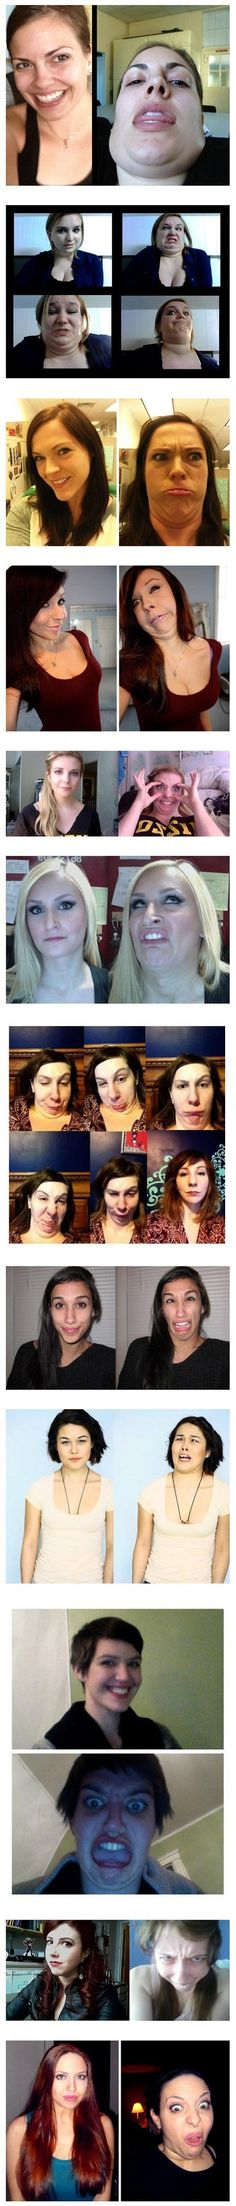 Attractive girls, making gross faces. This just made my day